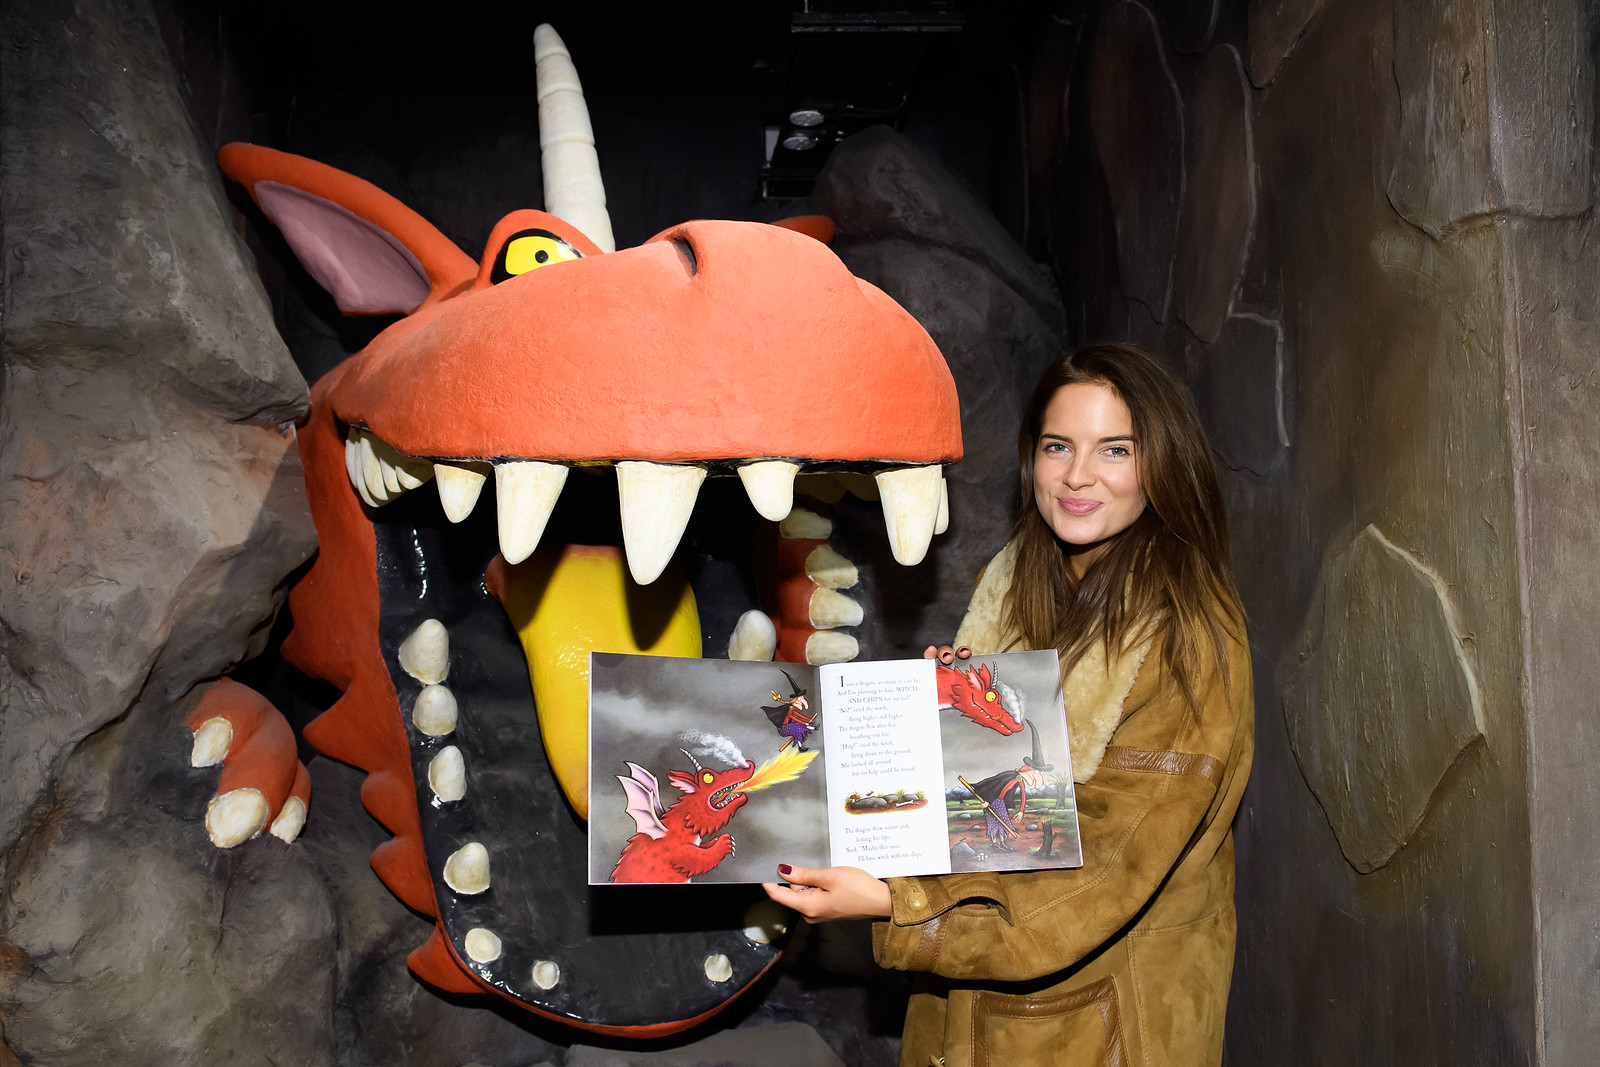 Binky Felsted compares the Dragon to the book's counterpart in Inside Room on the Broom - A Magical Journey - Image from INHOUSE IMAGES